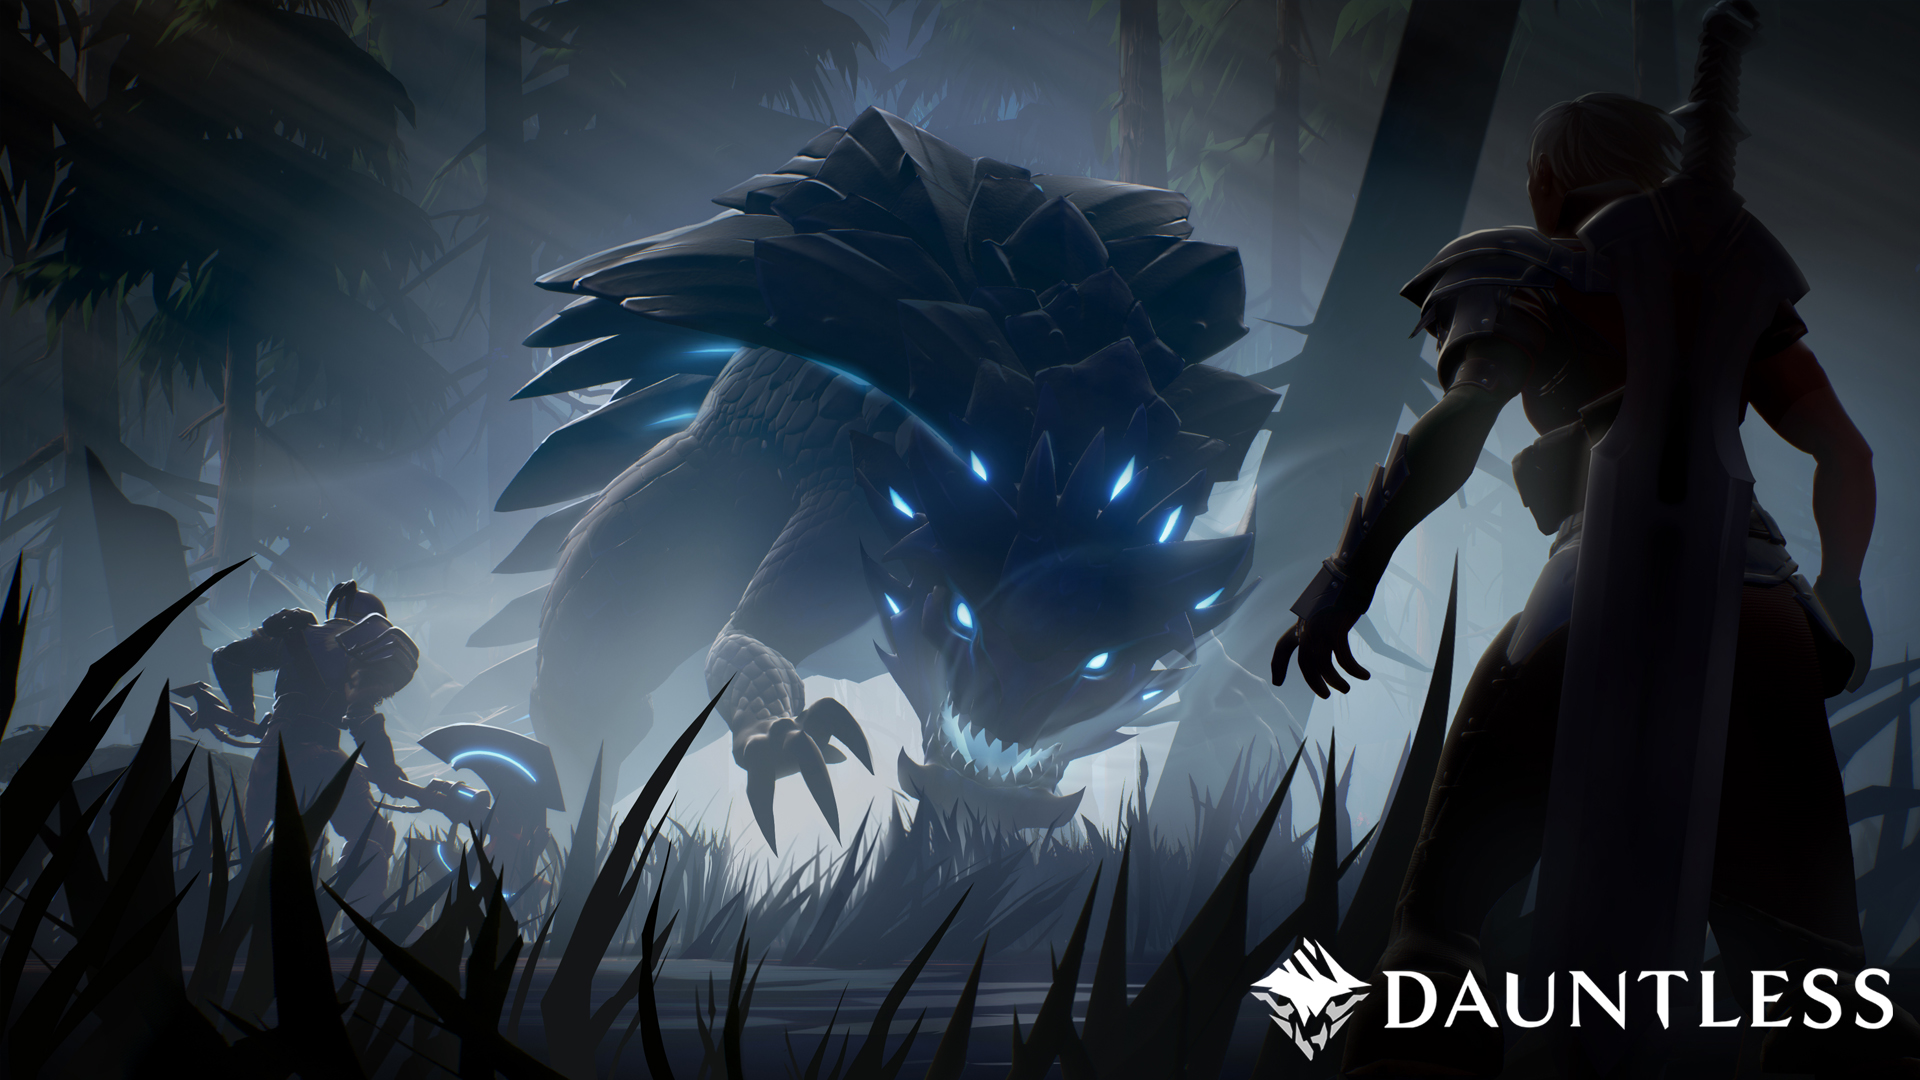 Dauntless Enters Closed Beta, Releases New Trailer